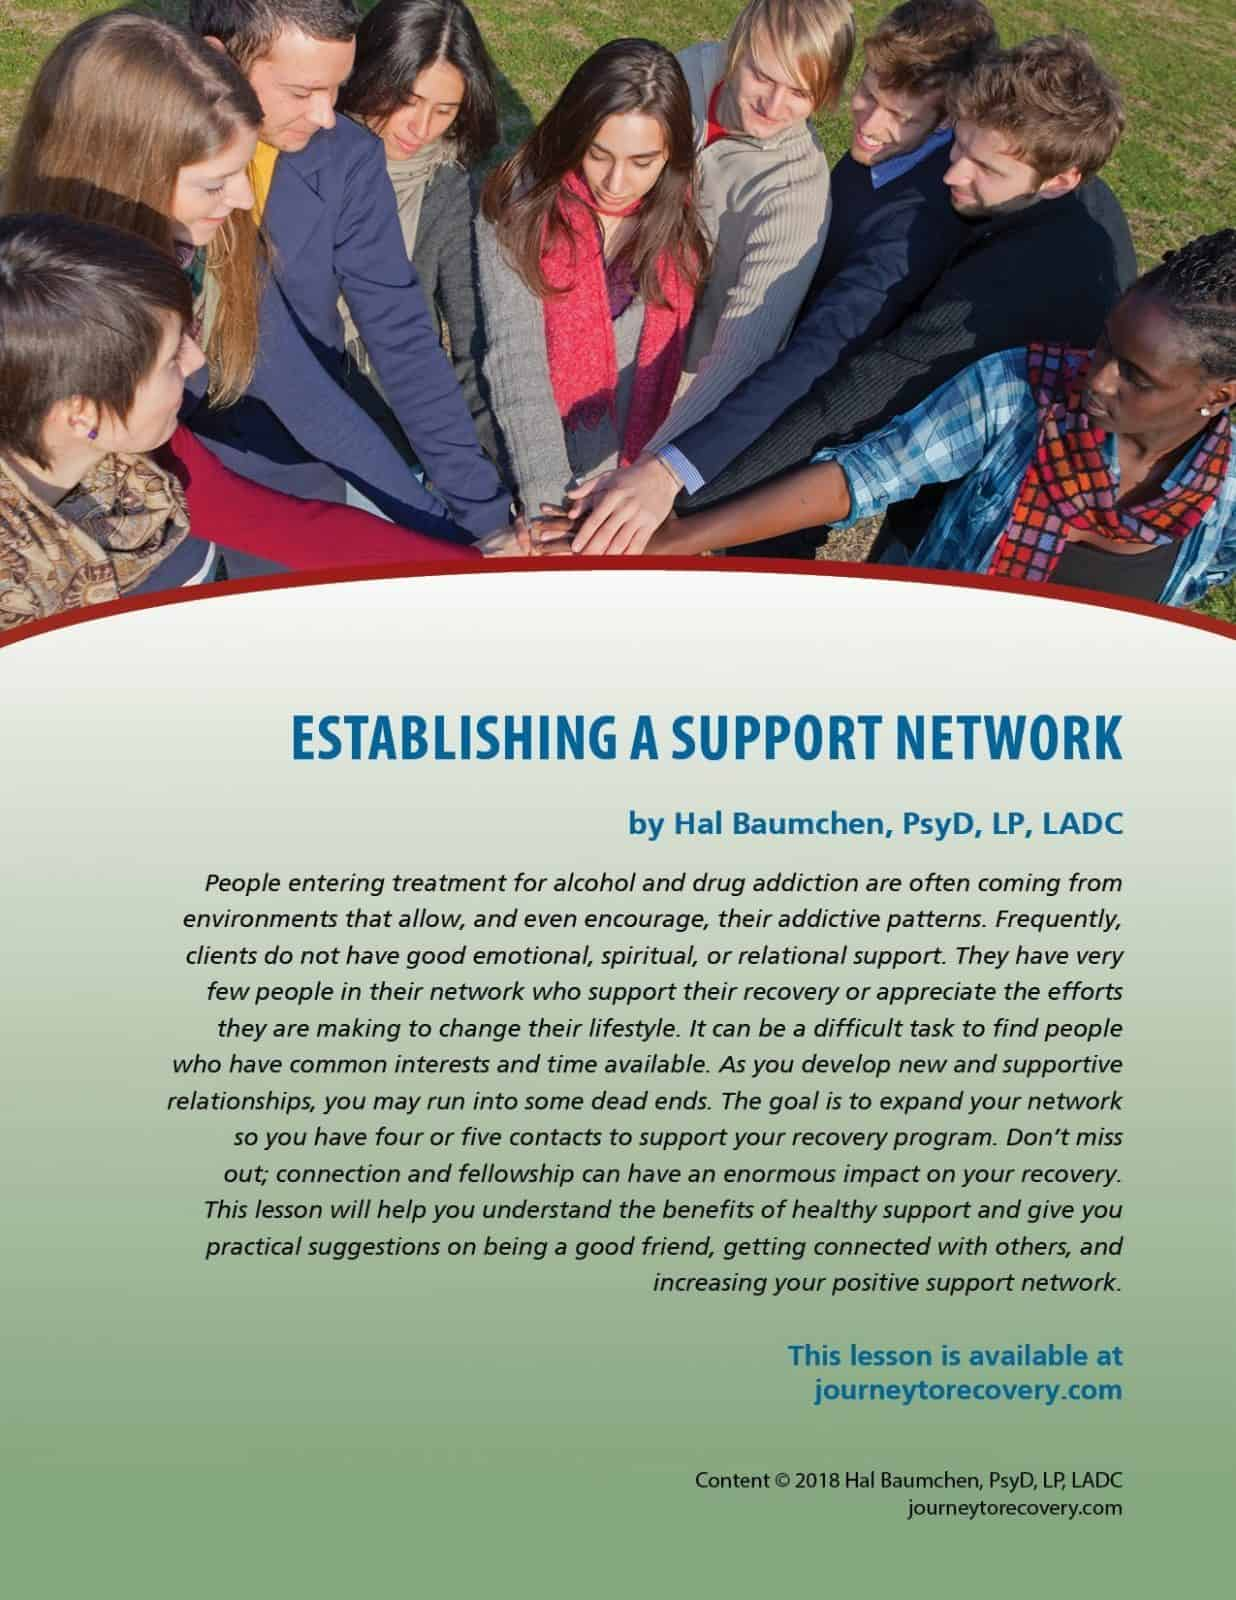 Establishing a Support Network (COD Lesson)